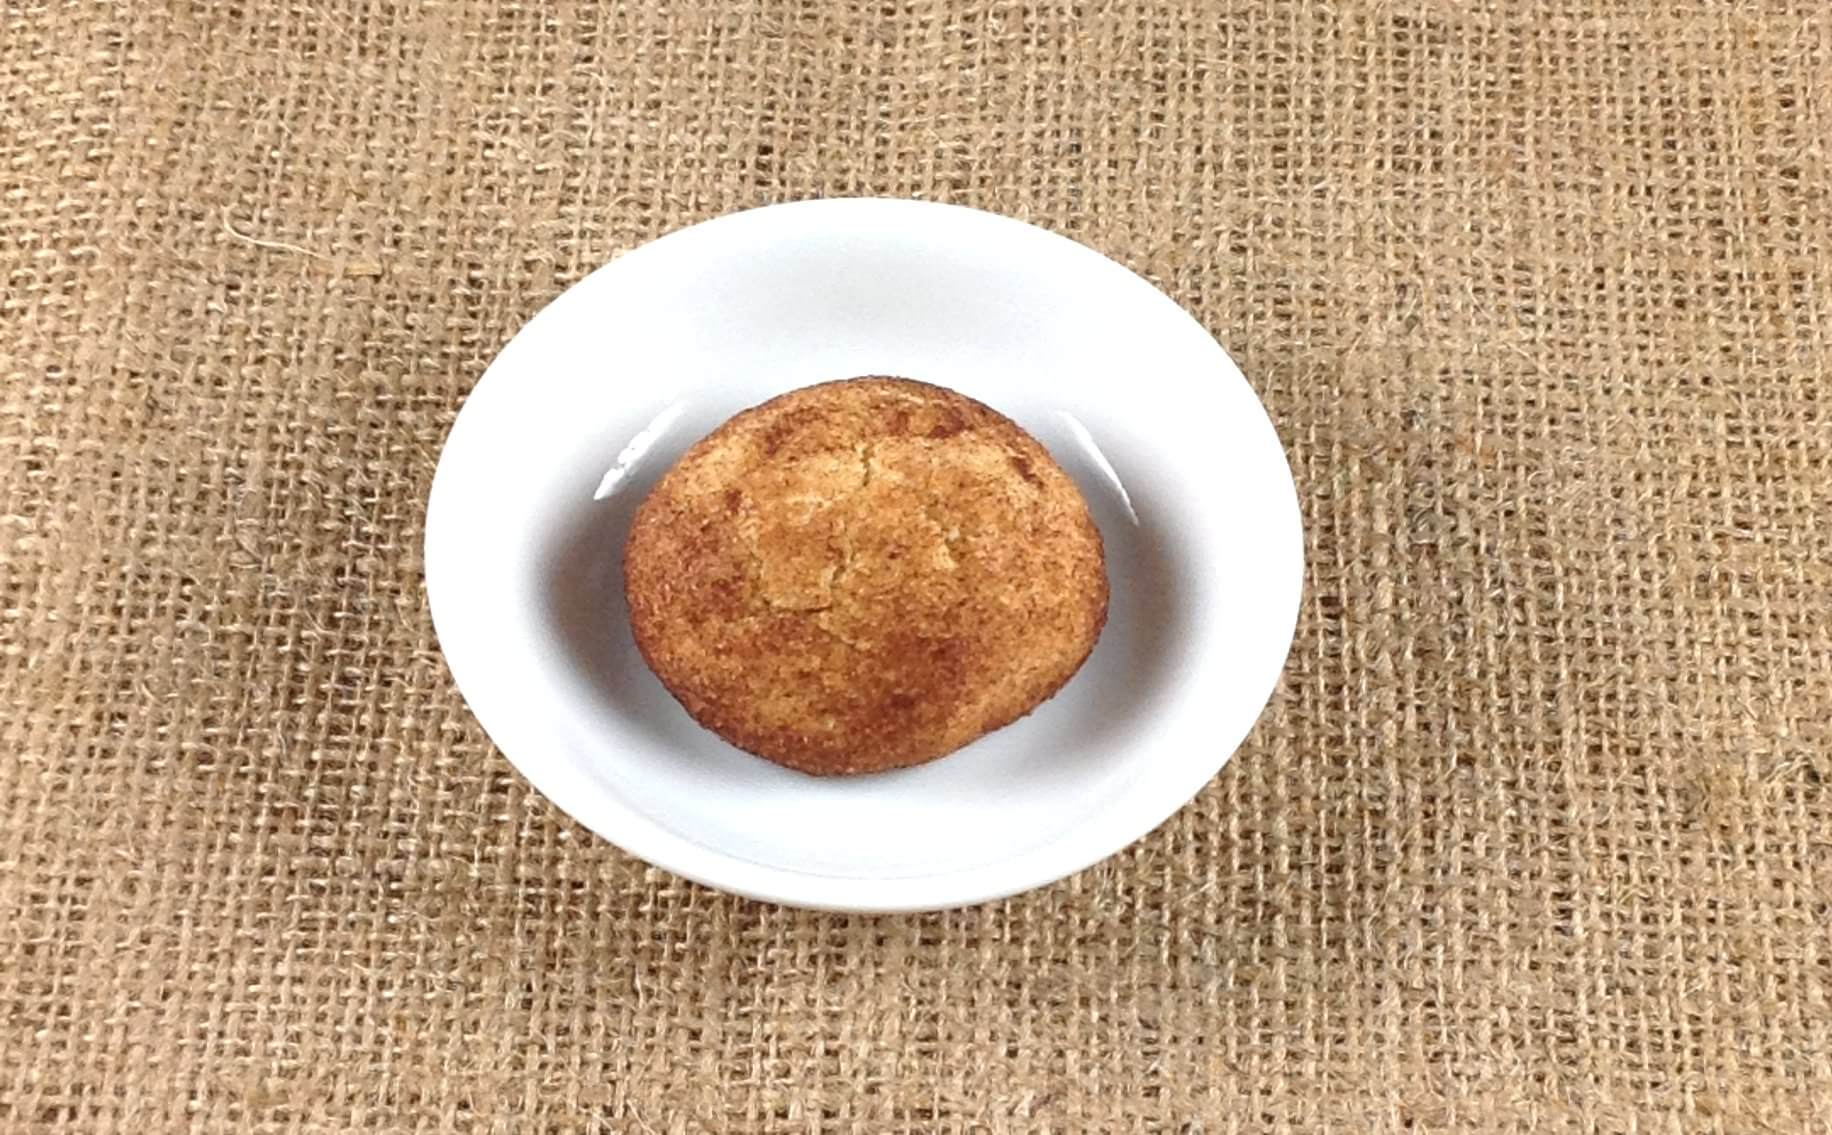 Picture of just one snickerdoodle